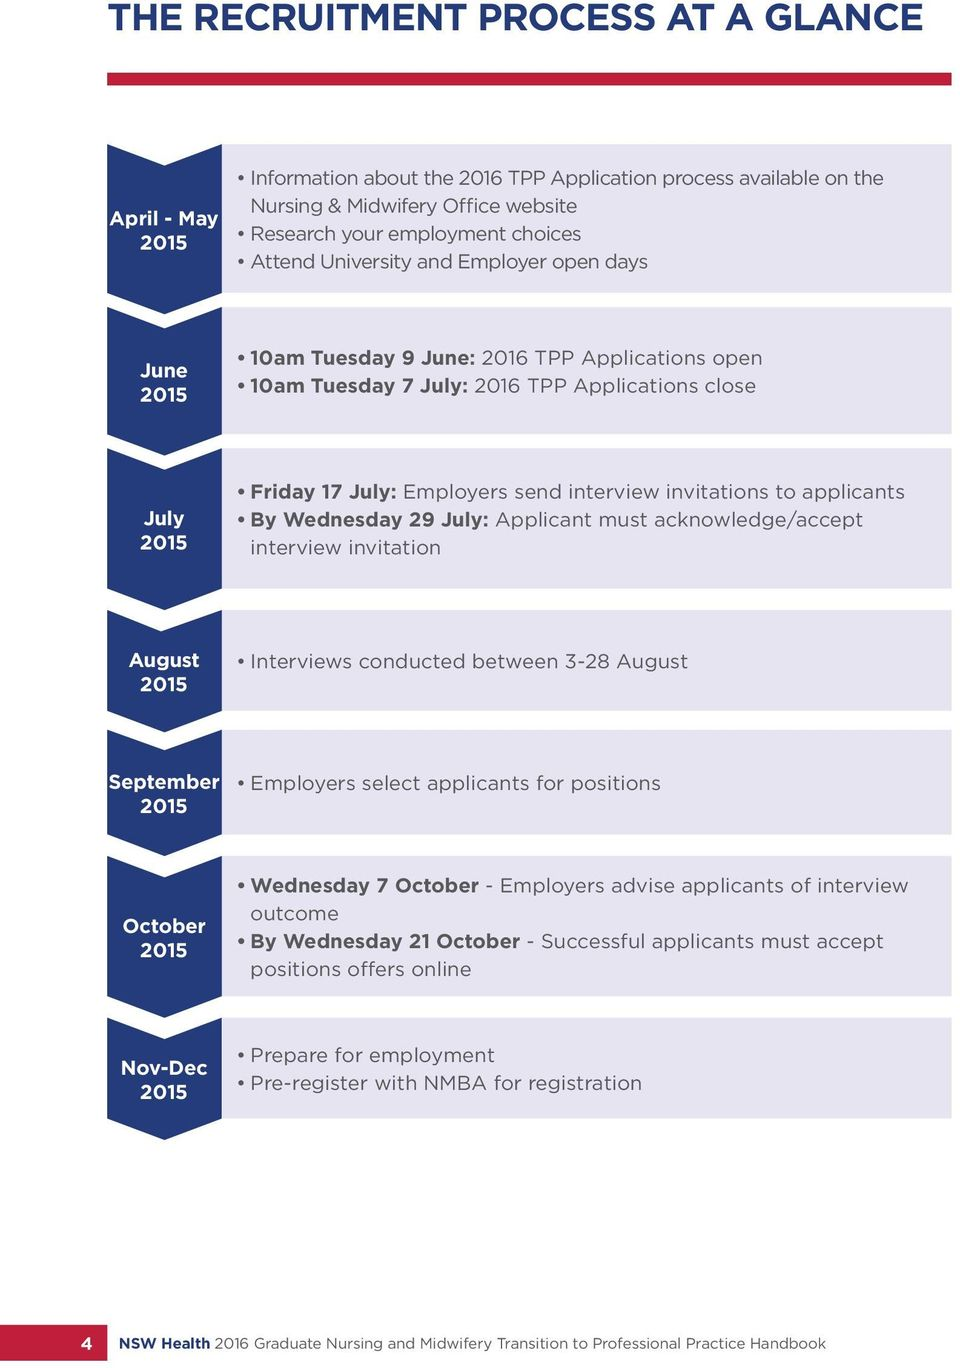 invitations to applicants By Wednesday 29 July: Applicant must acknowledge/accept interview invitation August 2015 Interviews conducted between 3-28 August September 2015 Employers select applicants